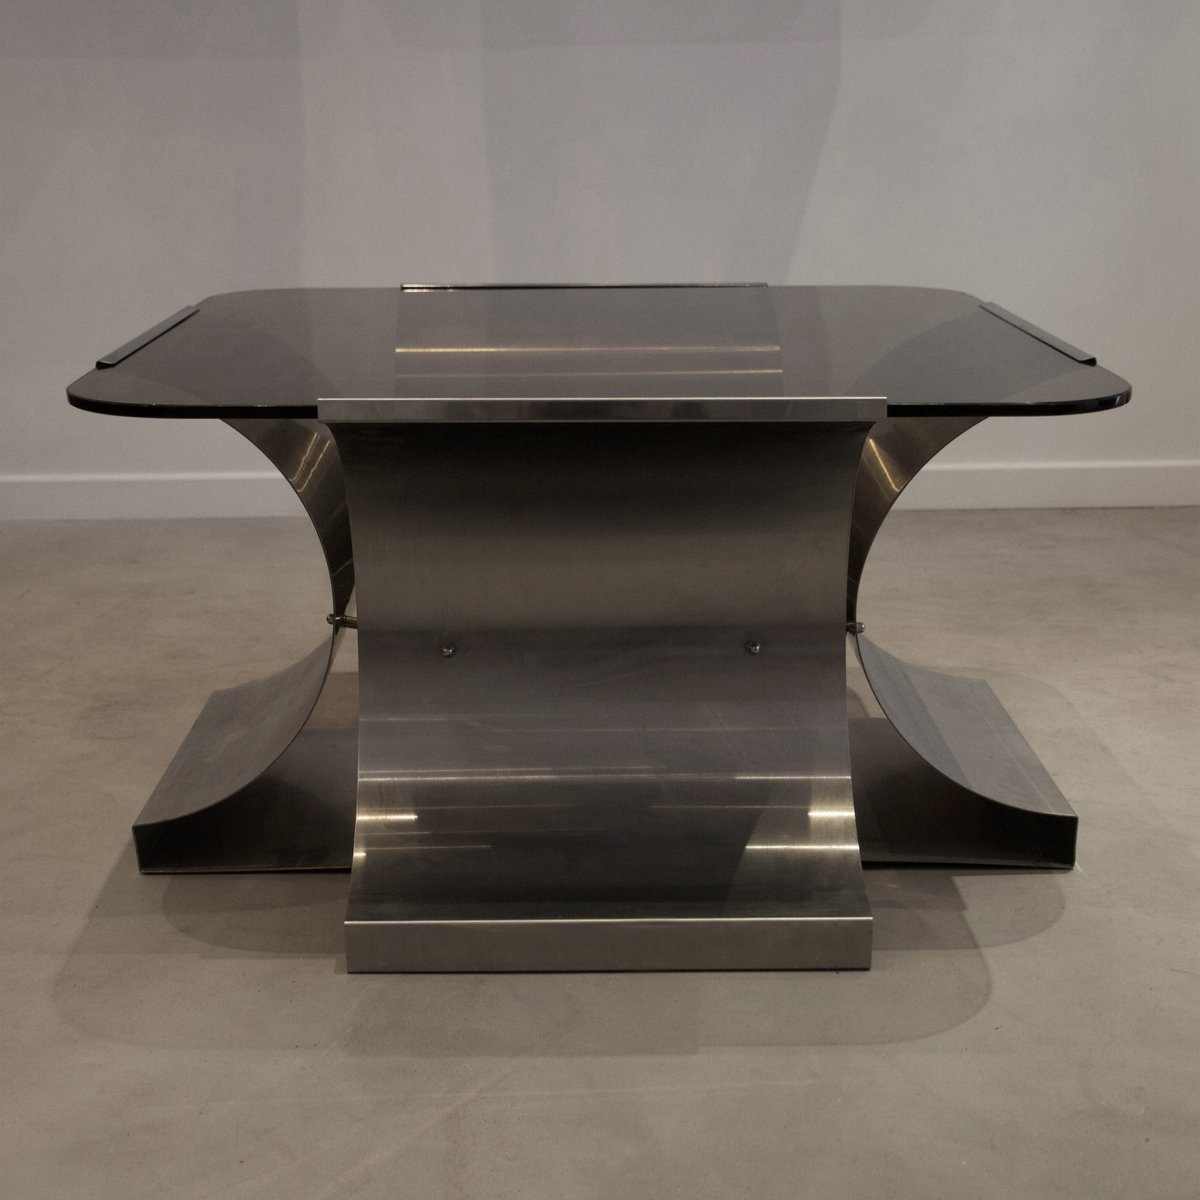 Square Steel Coffee Table Italian C 1970: French Stainless Steel And Glass Coffee Table By François